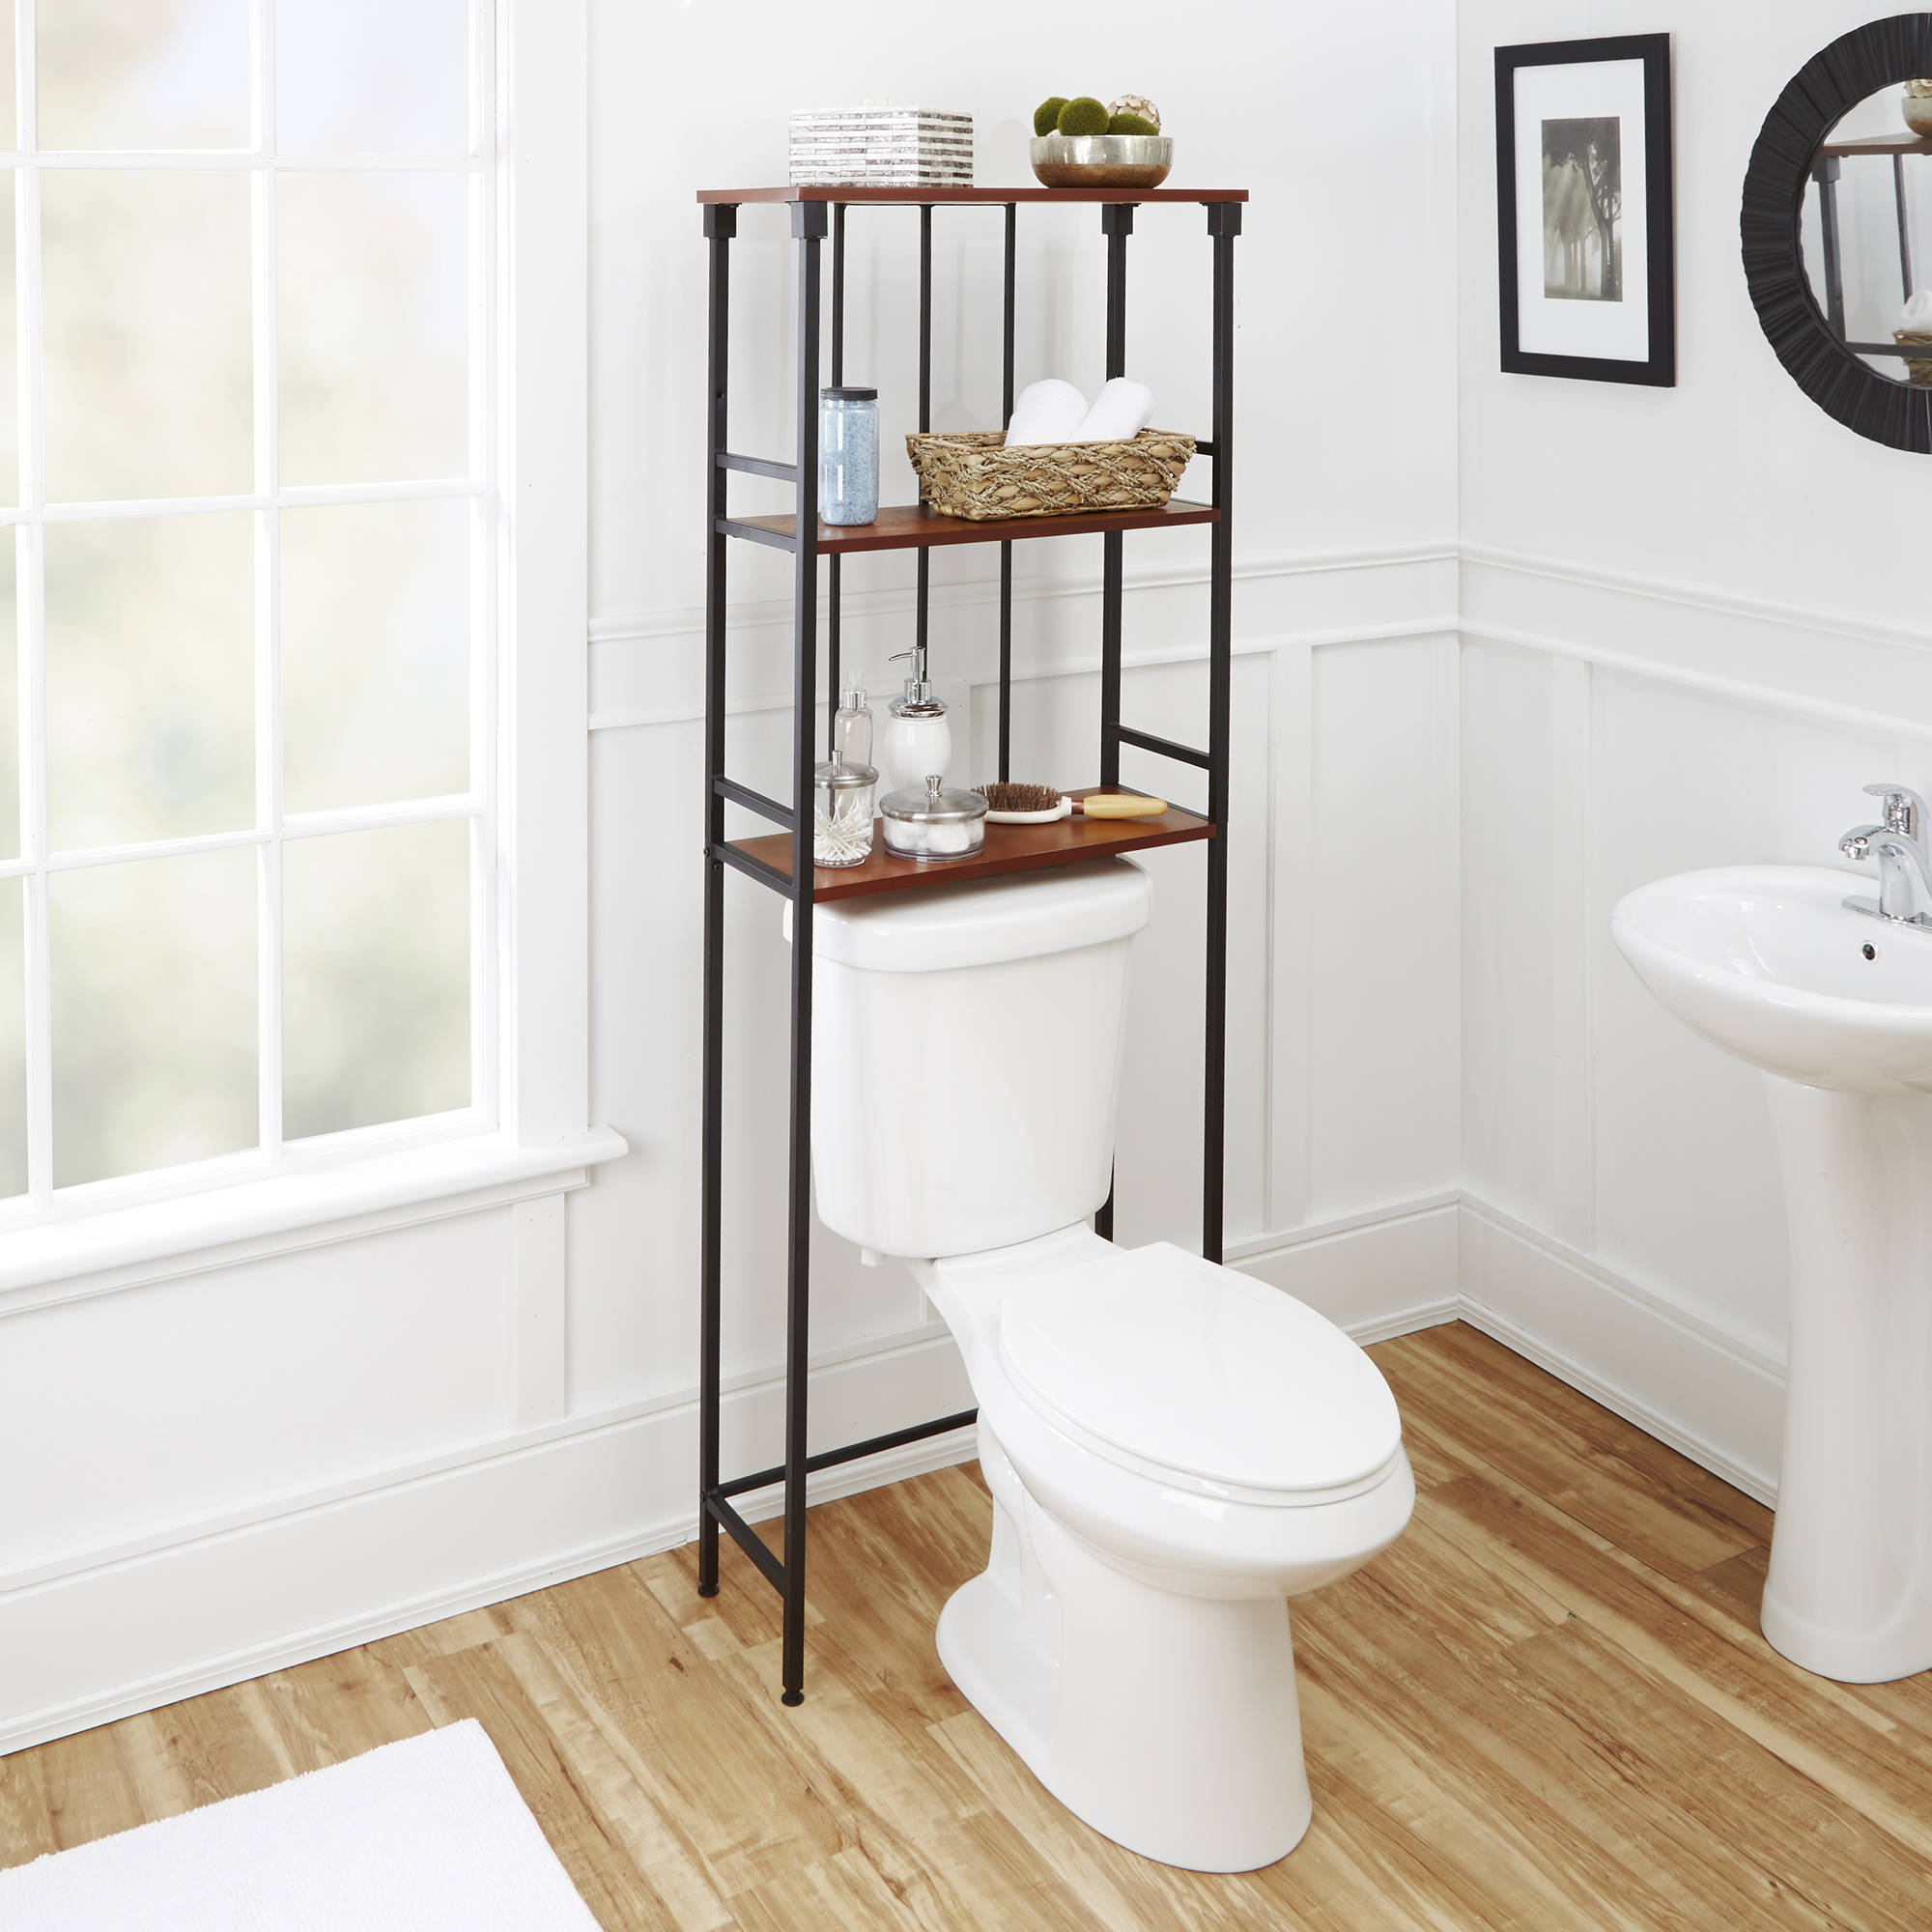 space ideas ikea spacesaver furniture of bunch bathroom saver